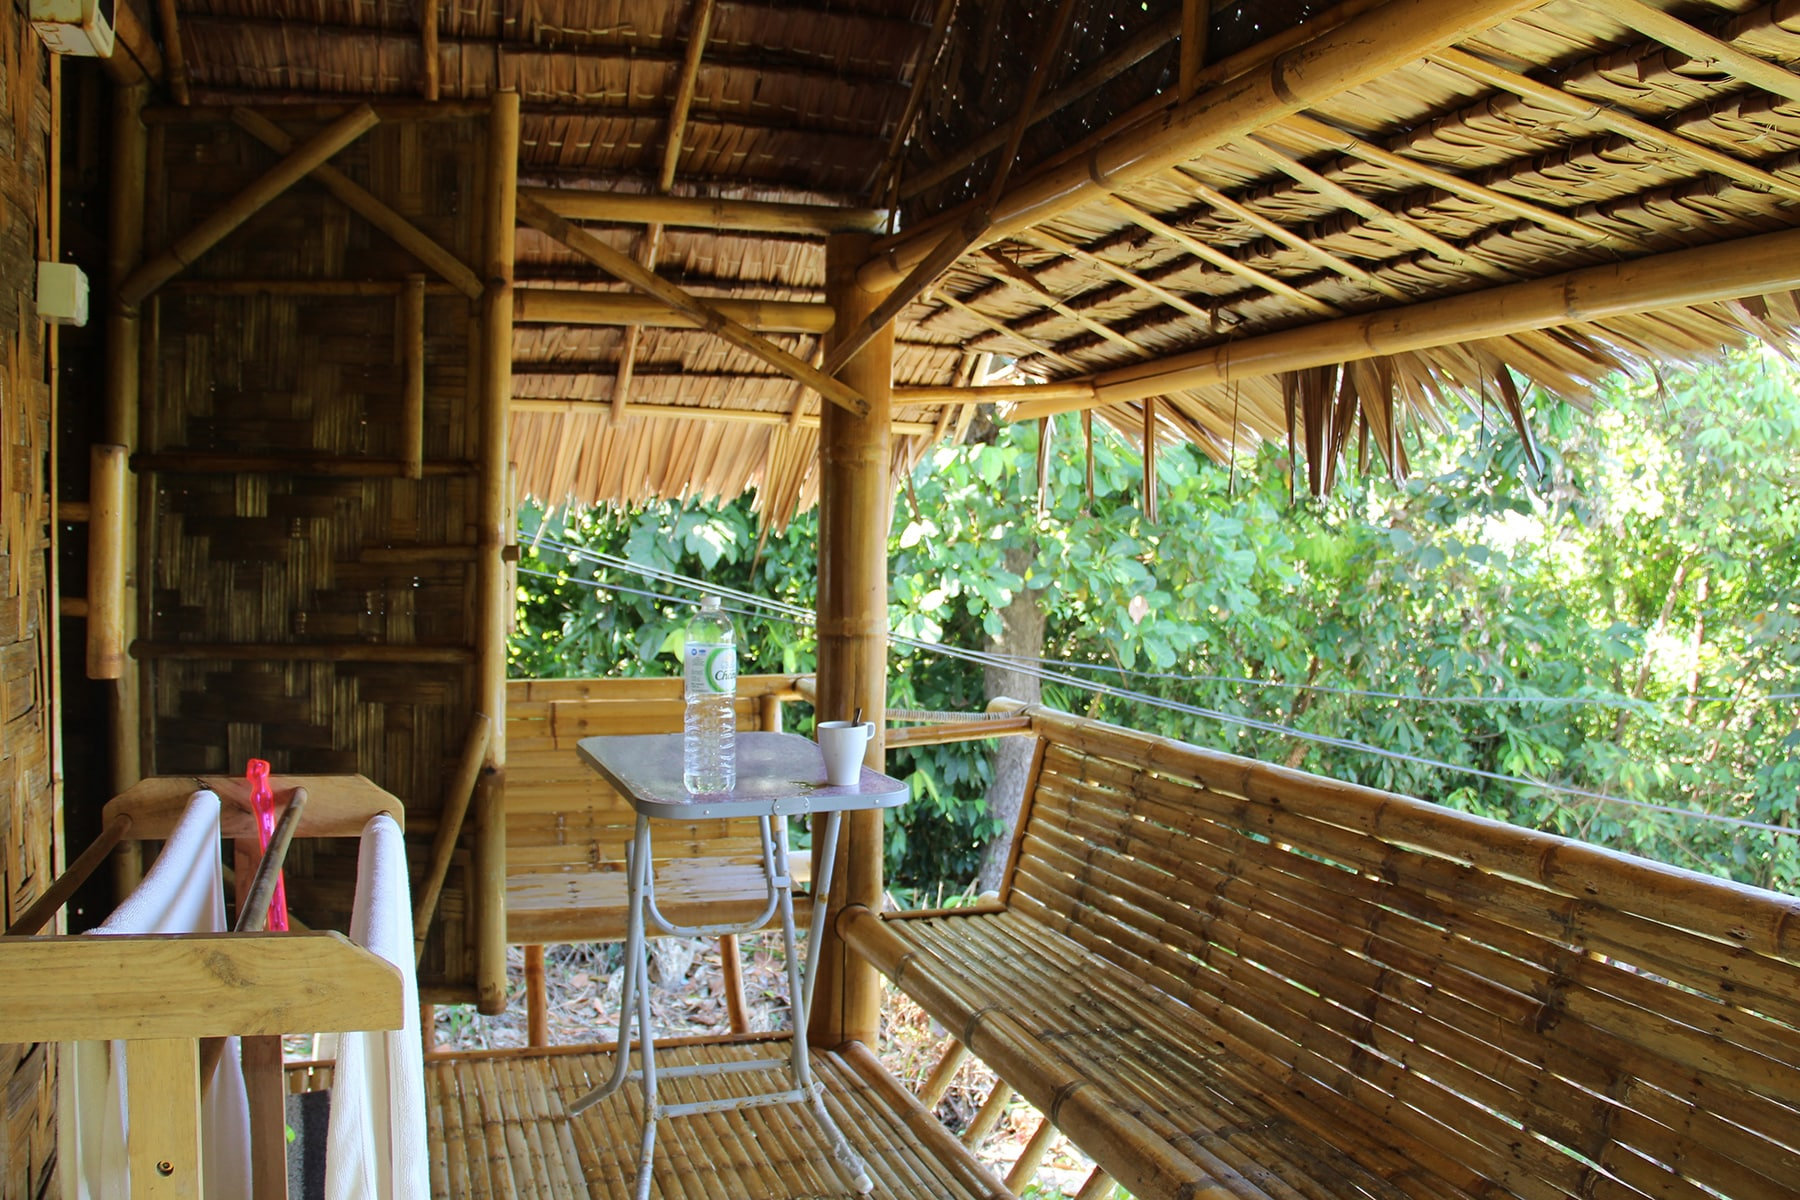 Our bamboo bungalow in Koh Lanta